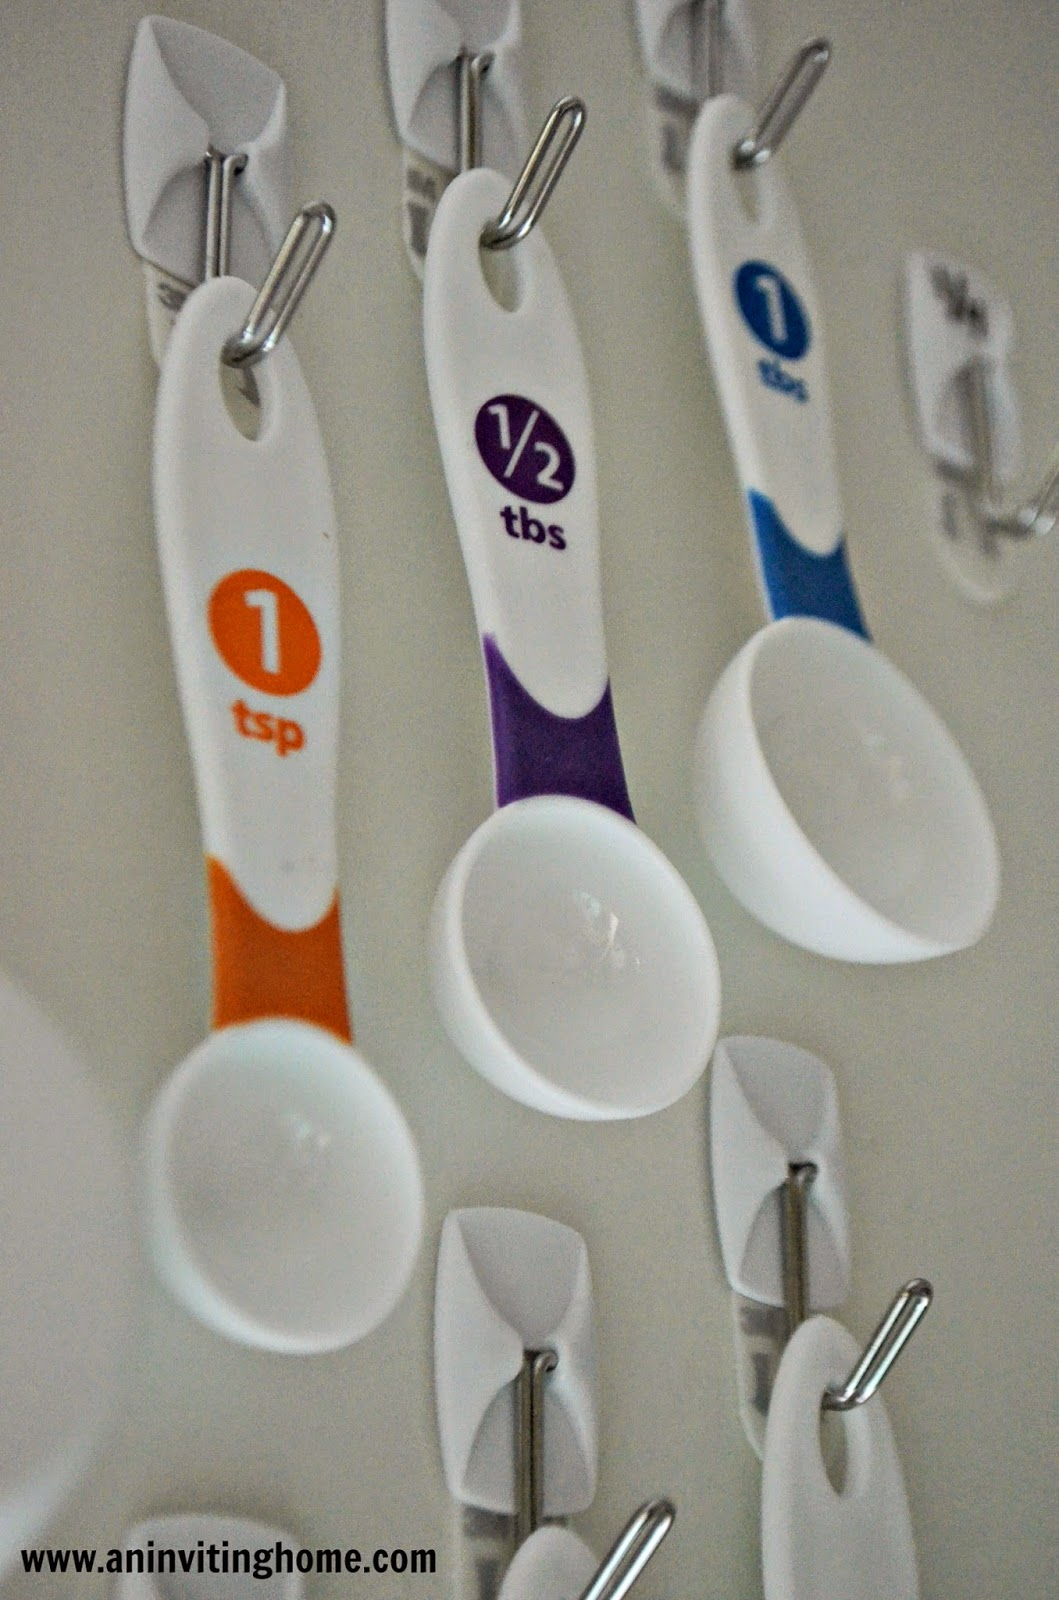 hanging measuring spoons on the back of a cupboard door